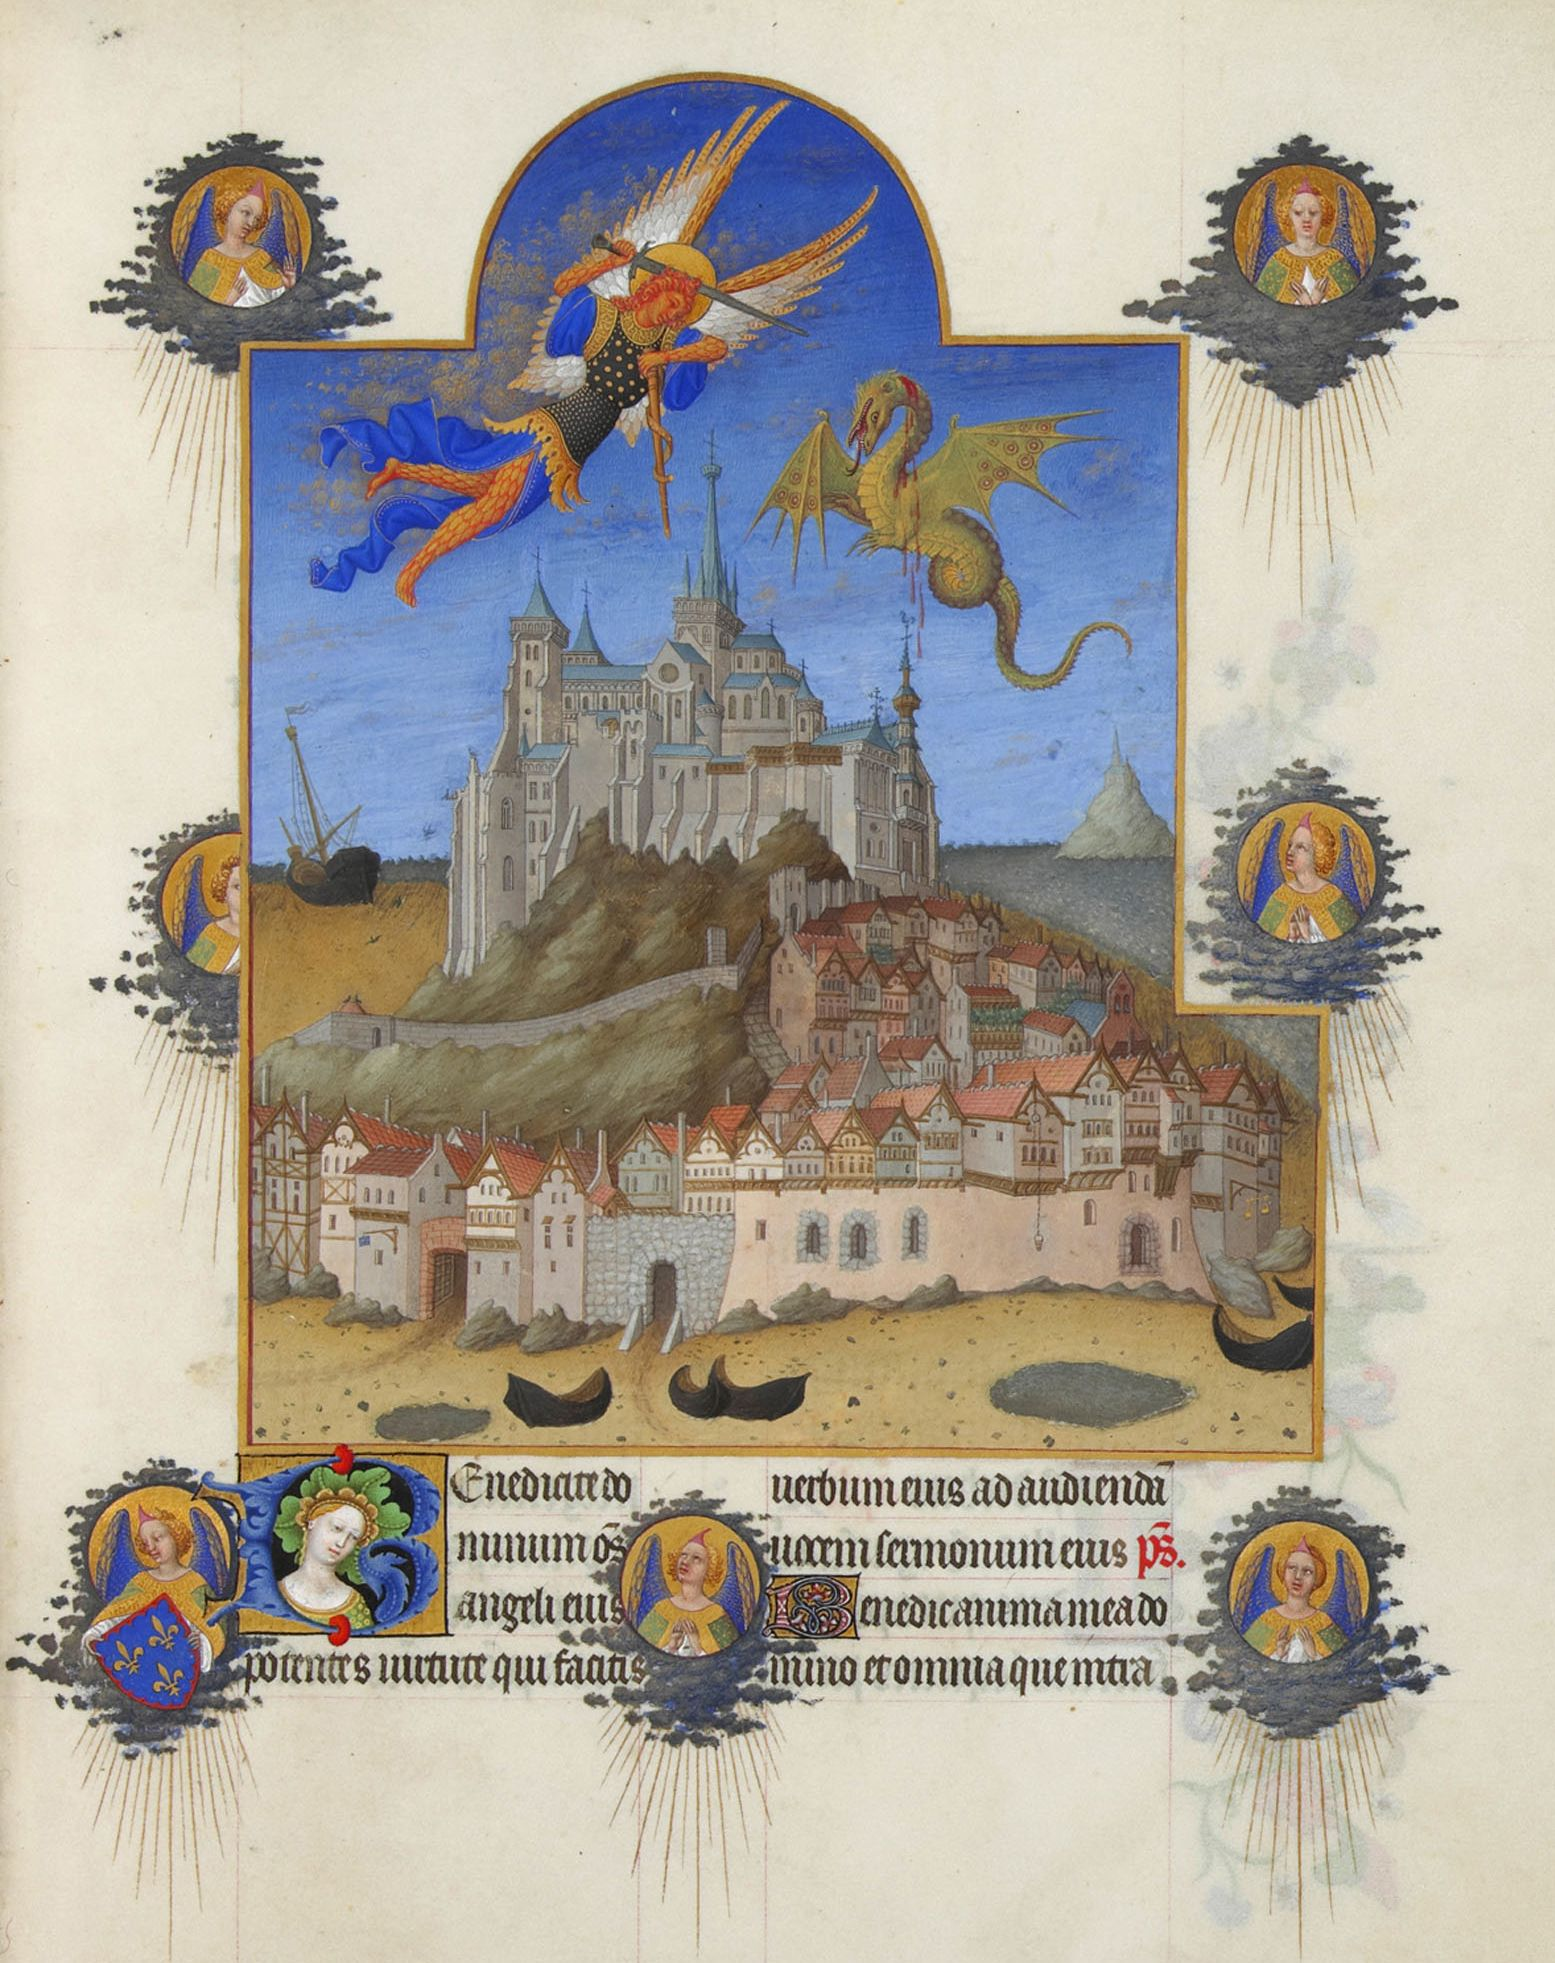 Les Très Riches Heures du duc de Berry, Folio 195r - The Mass of Saint Michael the Musée Condé, Chantilly.